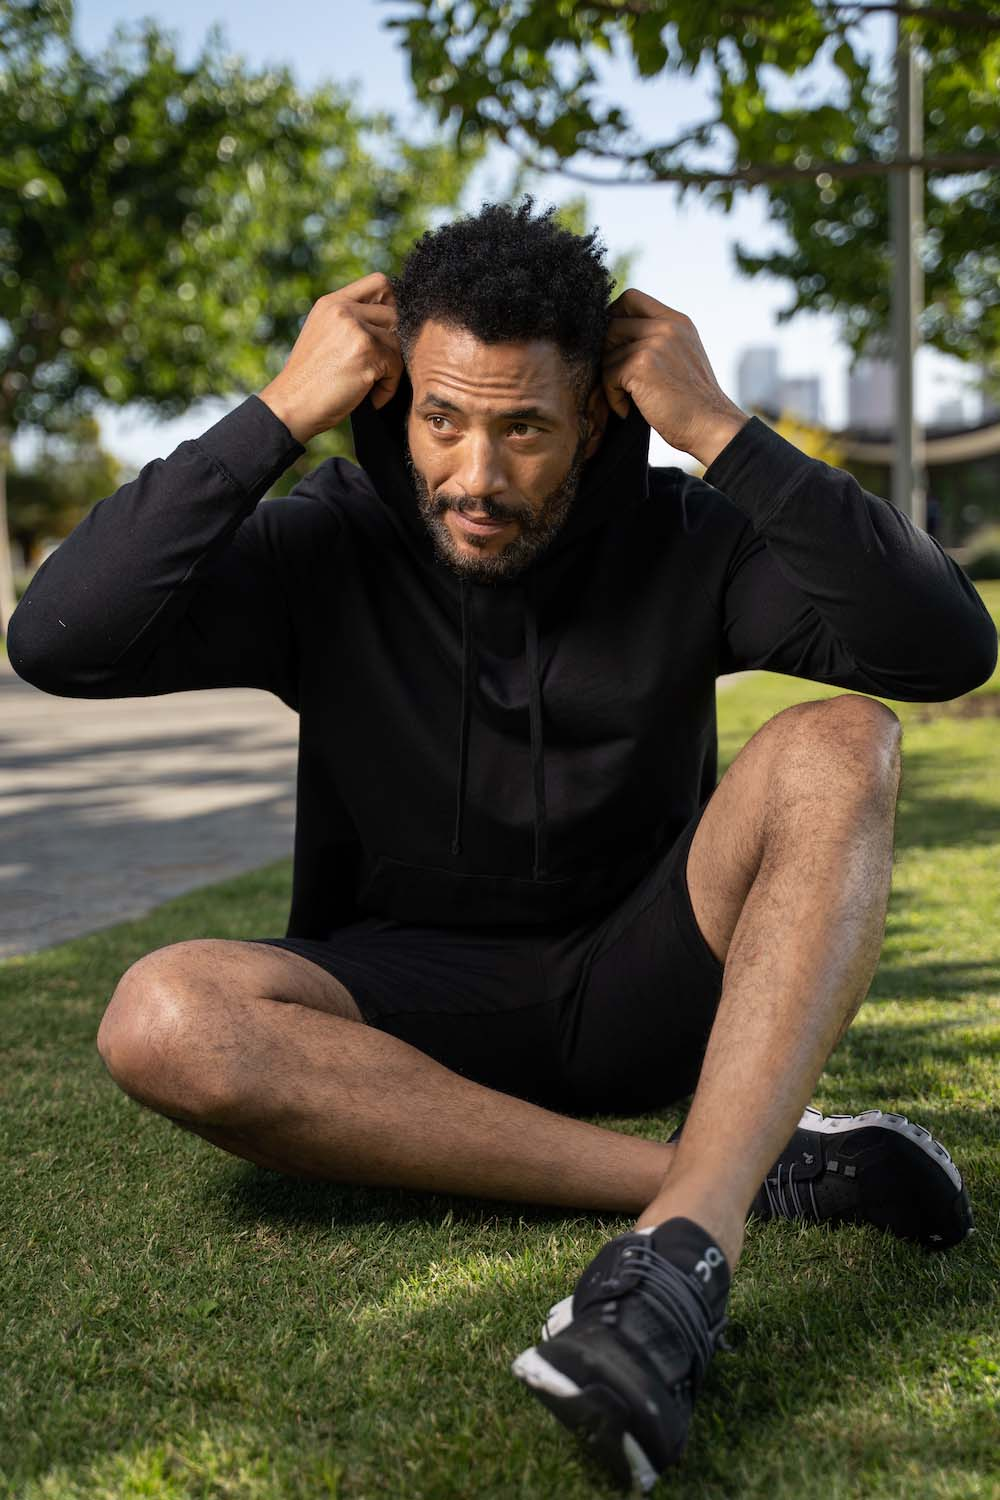 Lifestyle-On-Location-Model-Onmodel-Damion-Lloyd-Photography-Commercial-Product-Apparel-Clothing-Los-Angeles-Orange-County-male-man-GLYDER-sportswear-outdoor-city-urban-park-hoodie-black-shirt